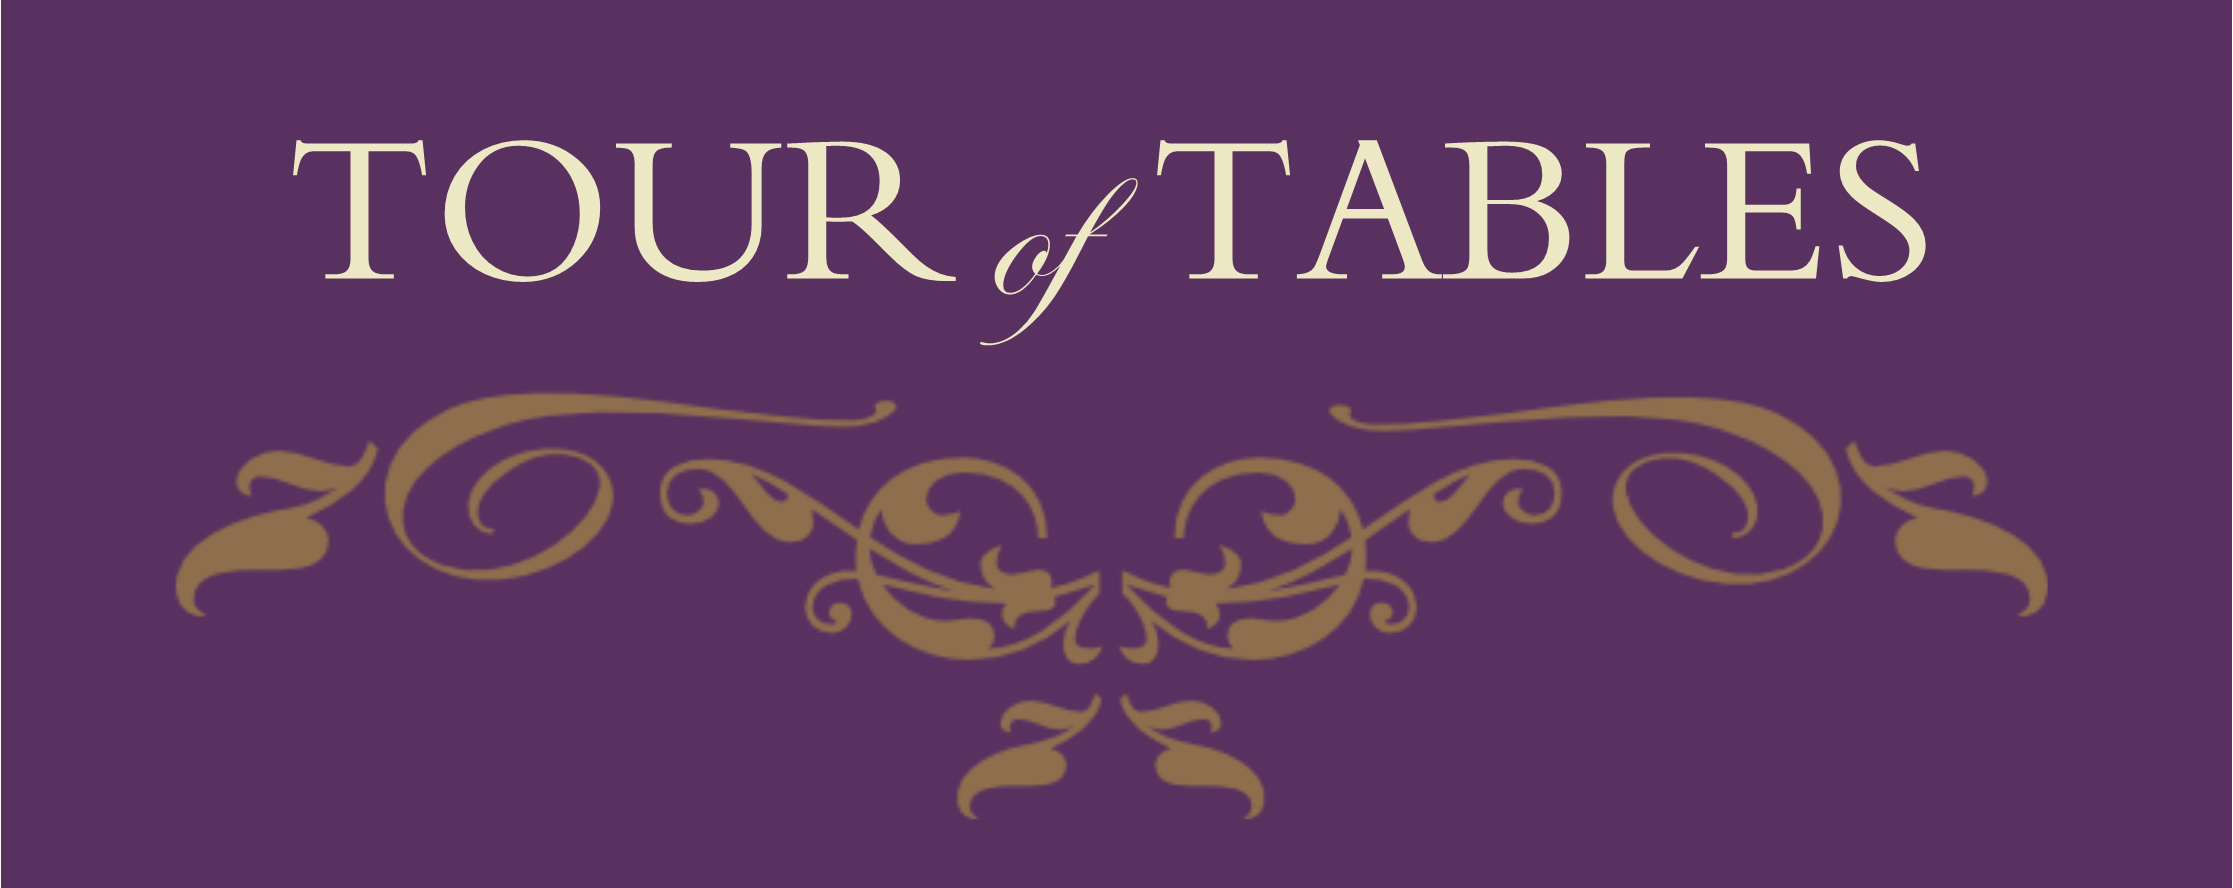 Tour of Tables